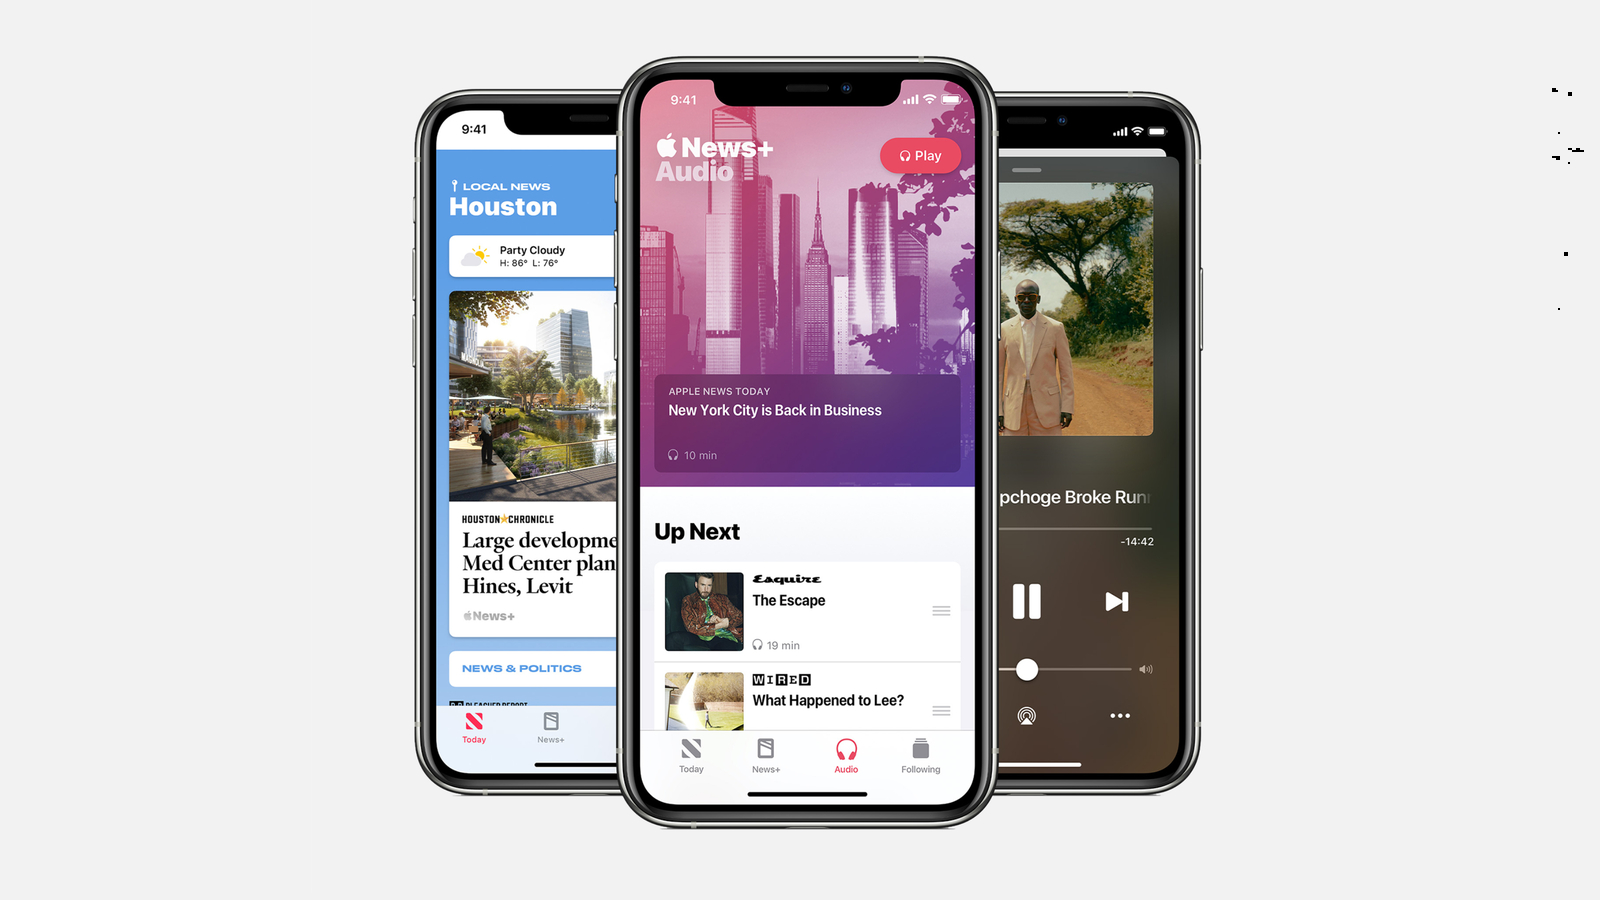 Apple enters the crowded market of daily news podcasts